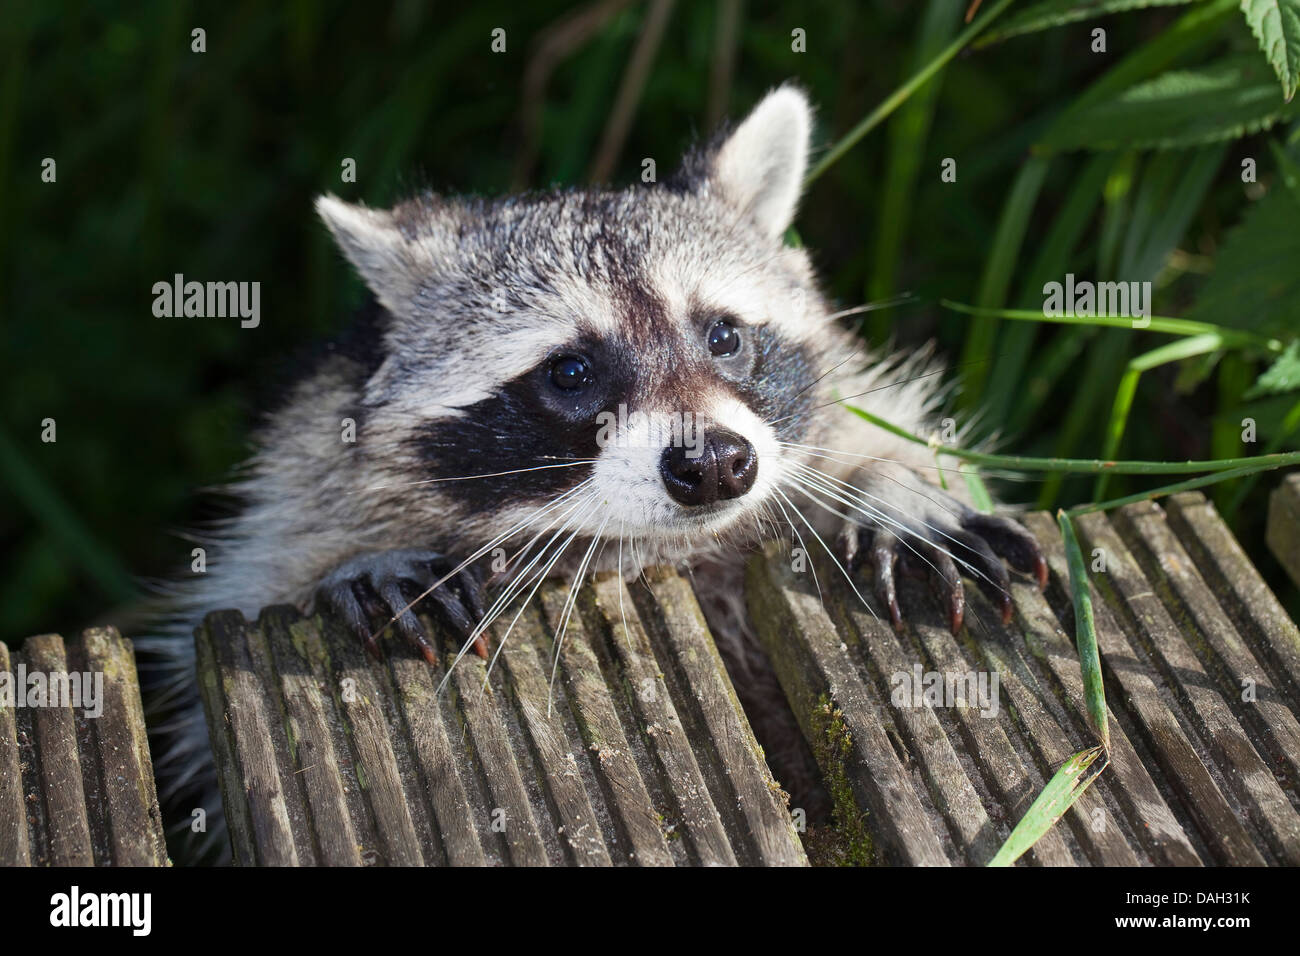 common raccoon (Procyon lotor), six month old male climbing onto a jetty, Germany - Stock Image